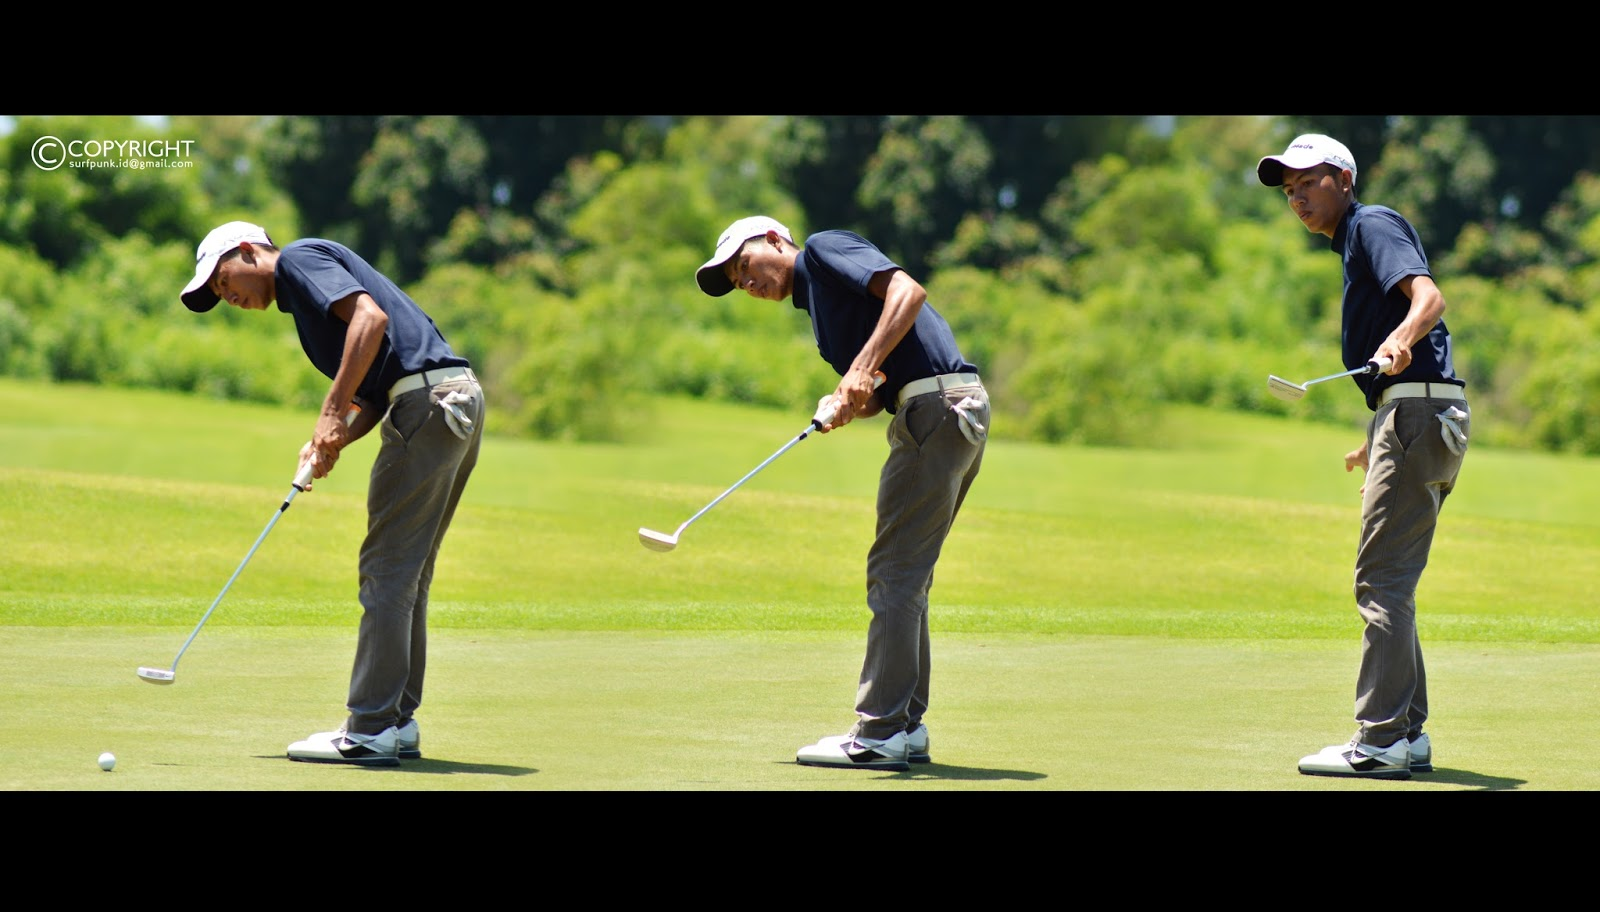 Summer Months Crucial For Development Of Division I Golfers Like Israelson